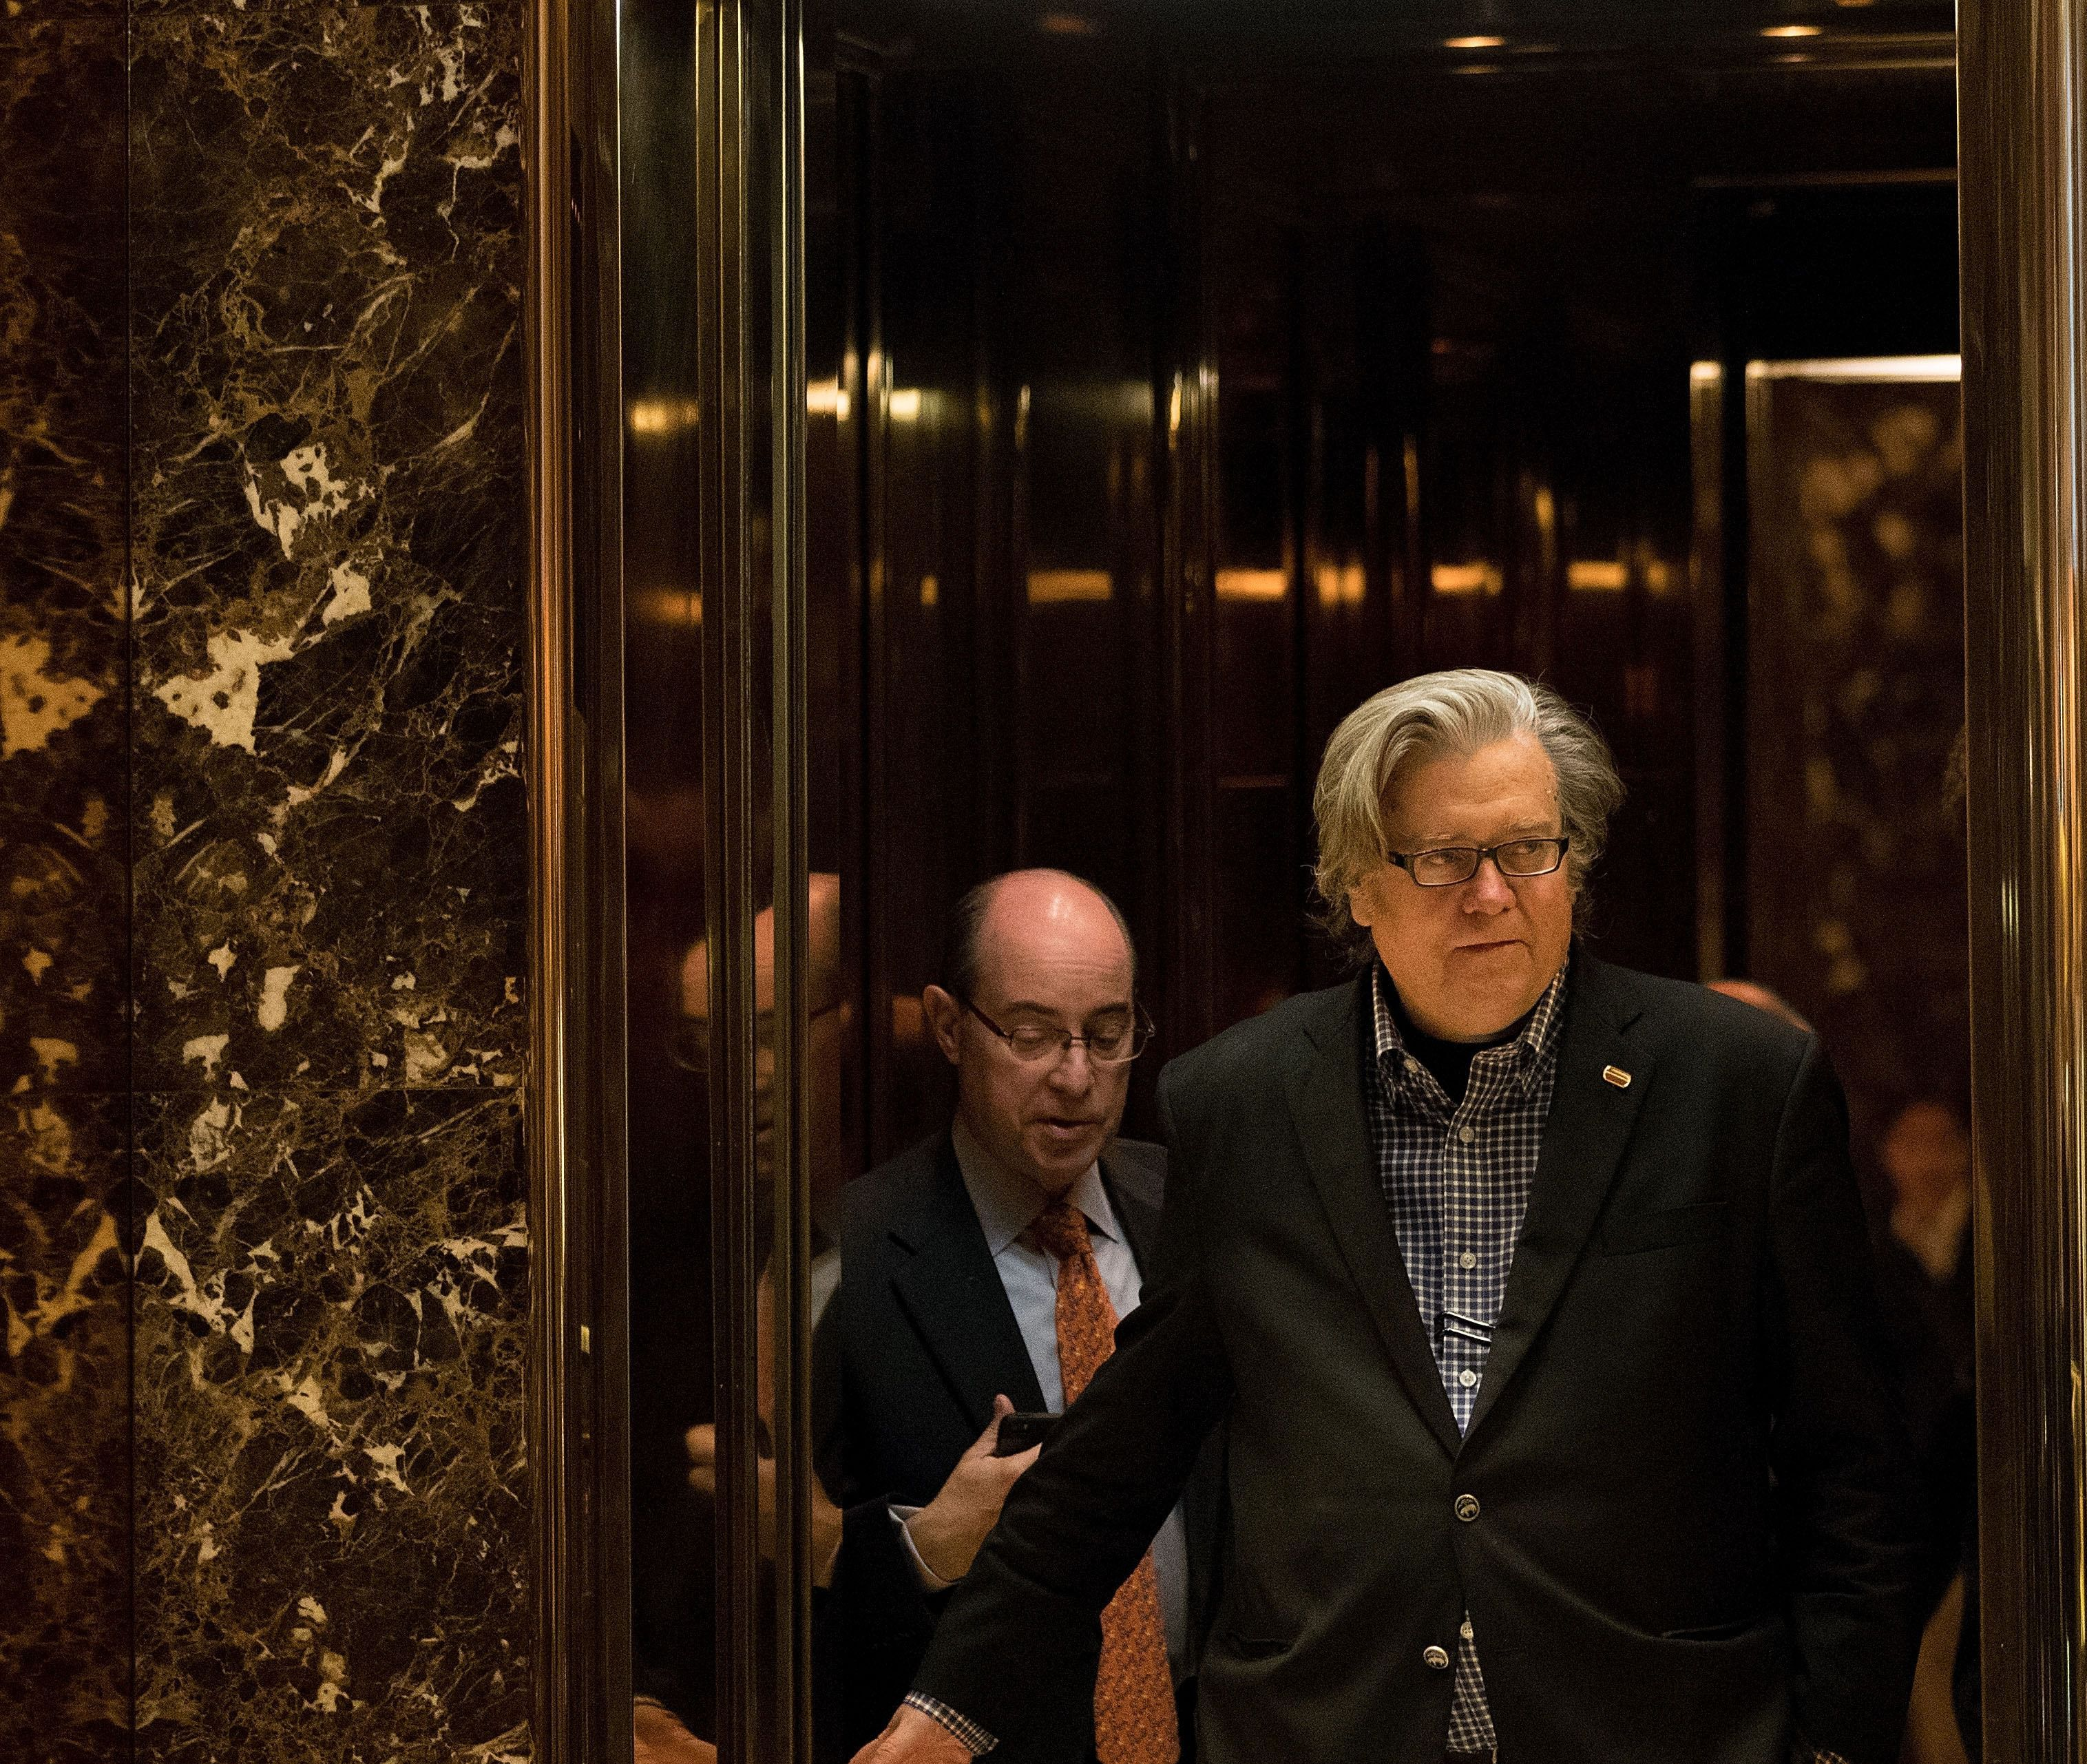 ZOA Rolled Out The Red Carpet For Steve Bannon — And It Backfired